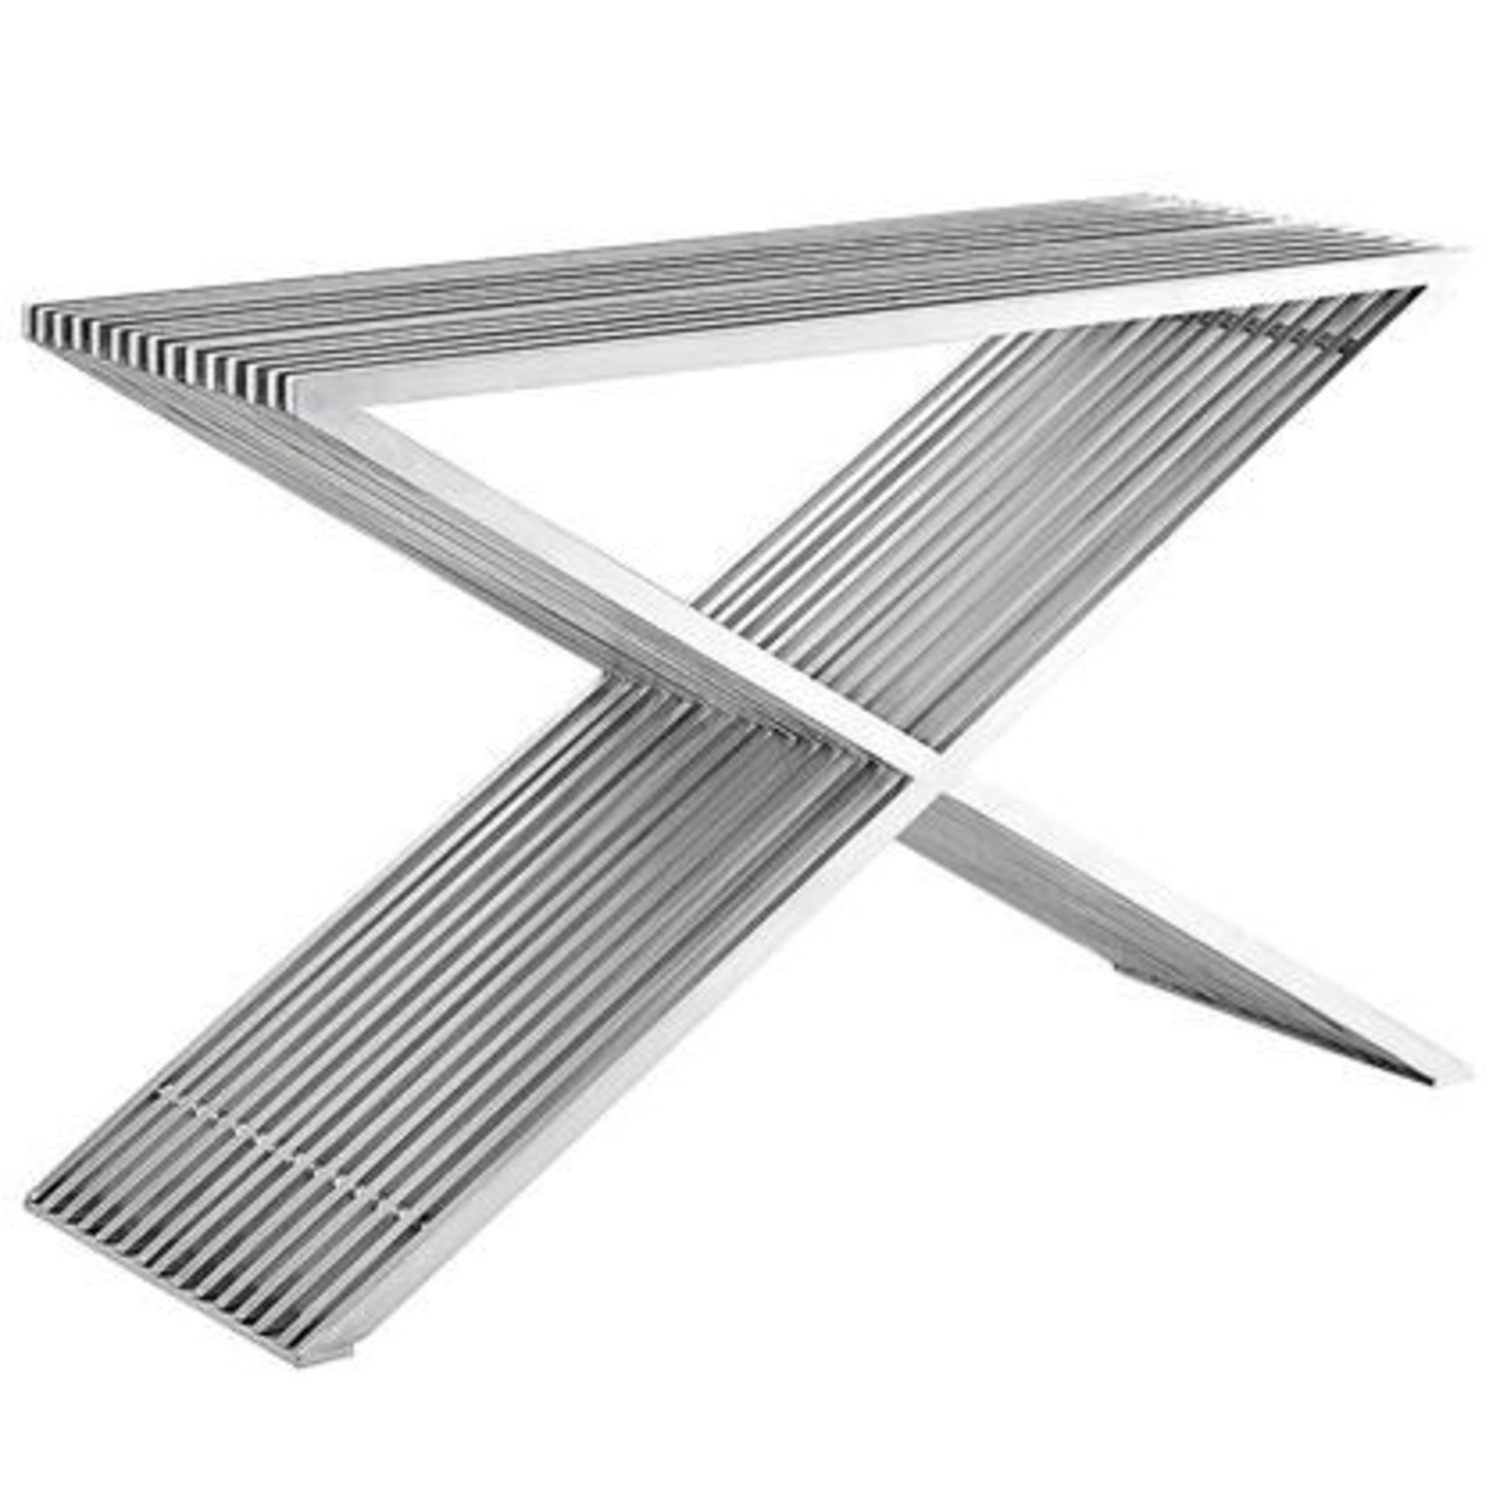 Console Table In Silver Brushed Aluminum Finish - image-0